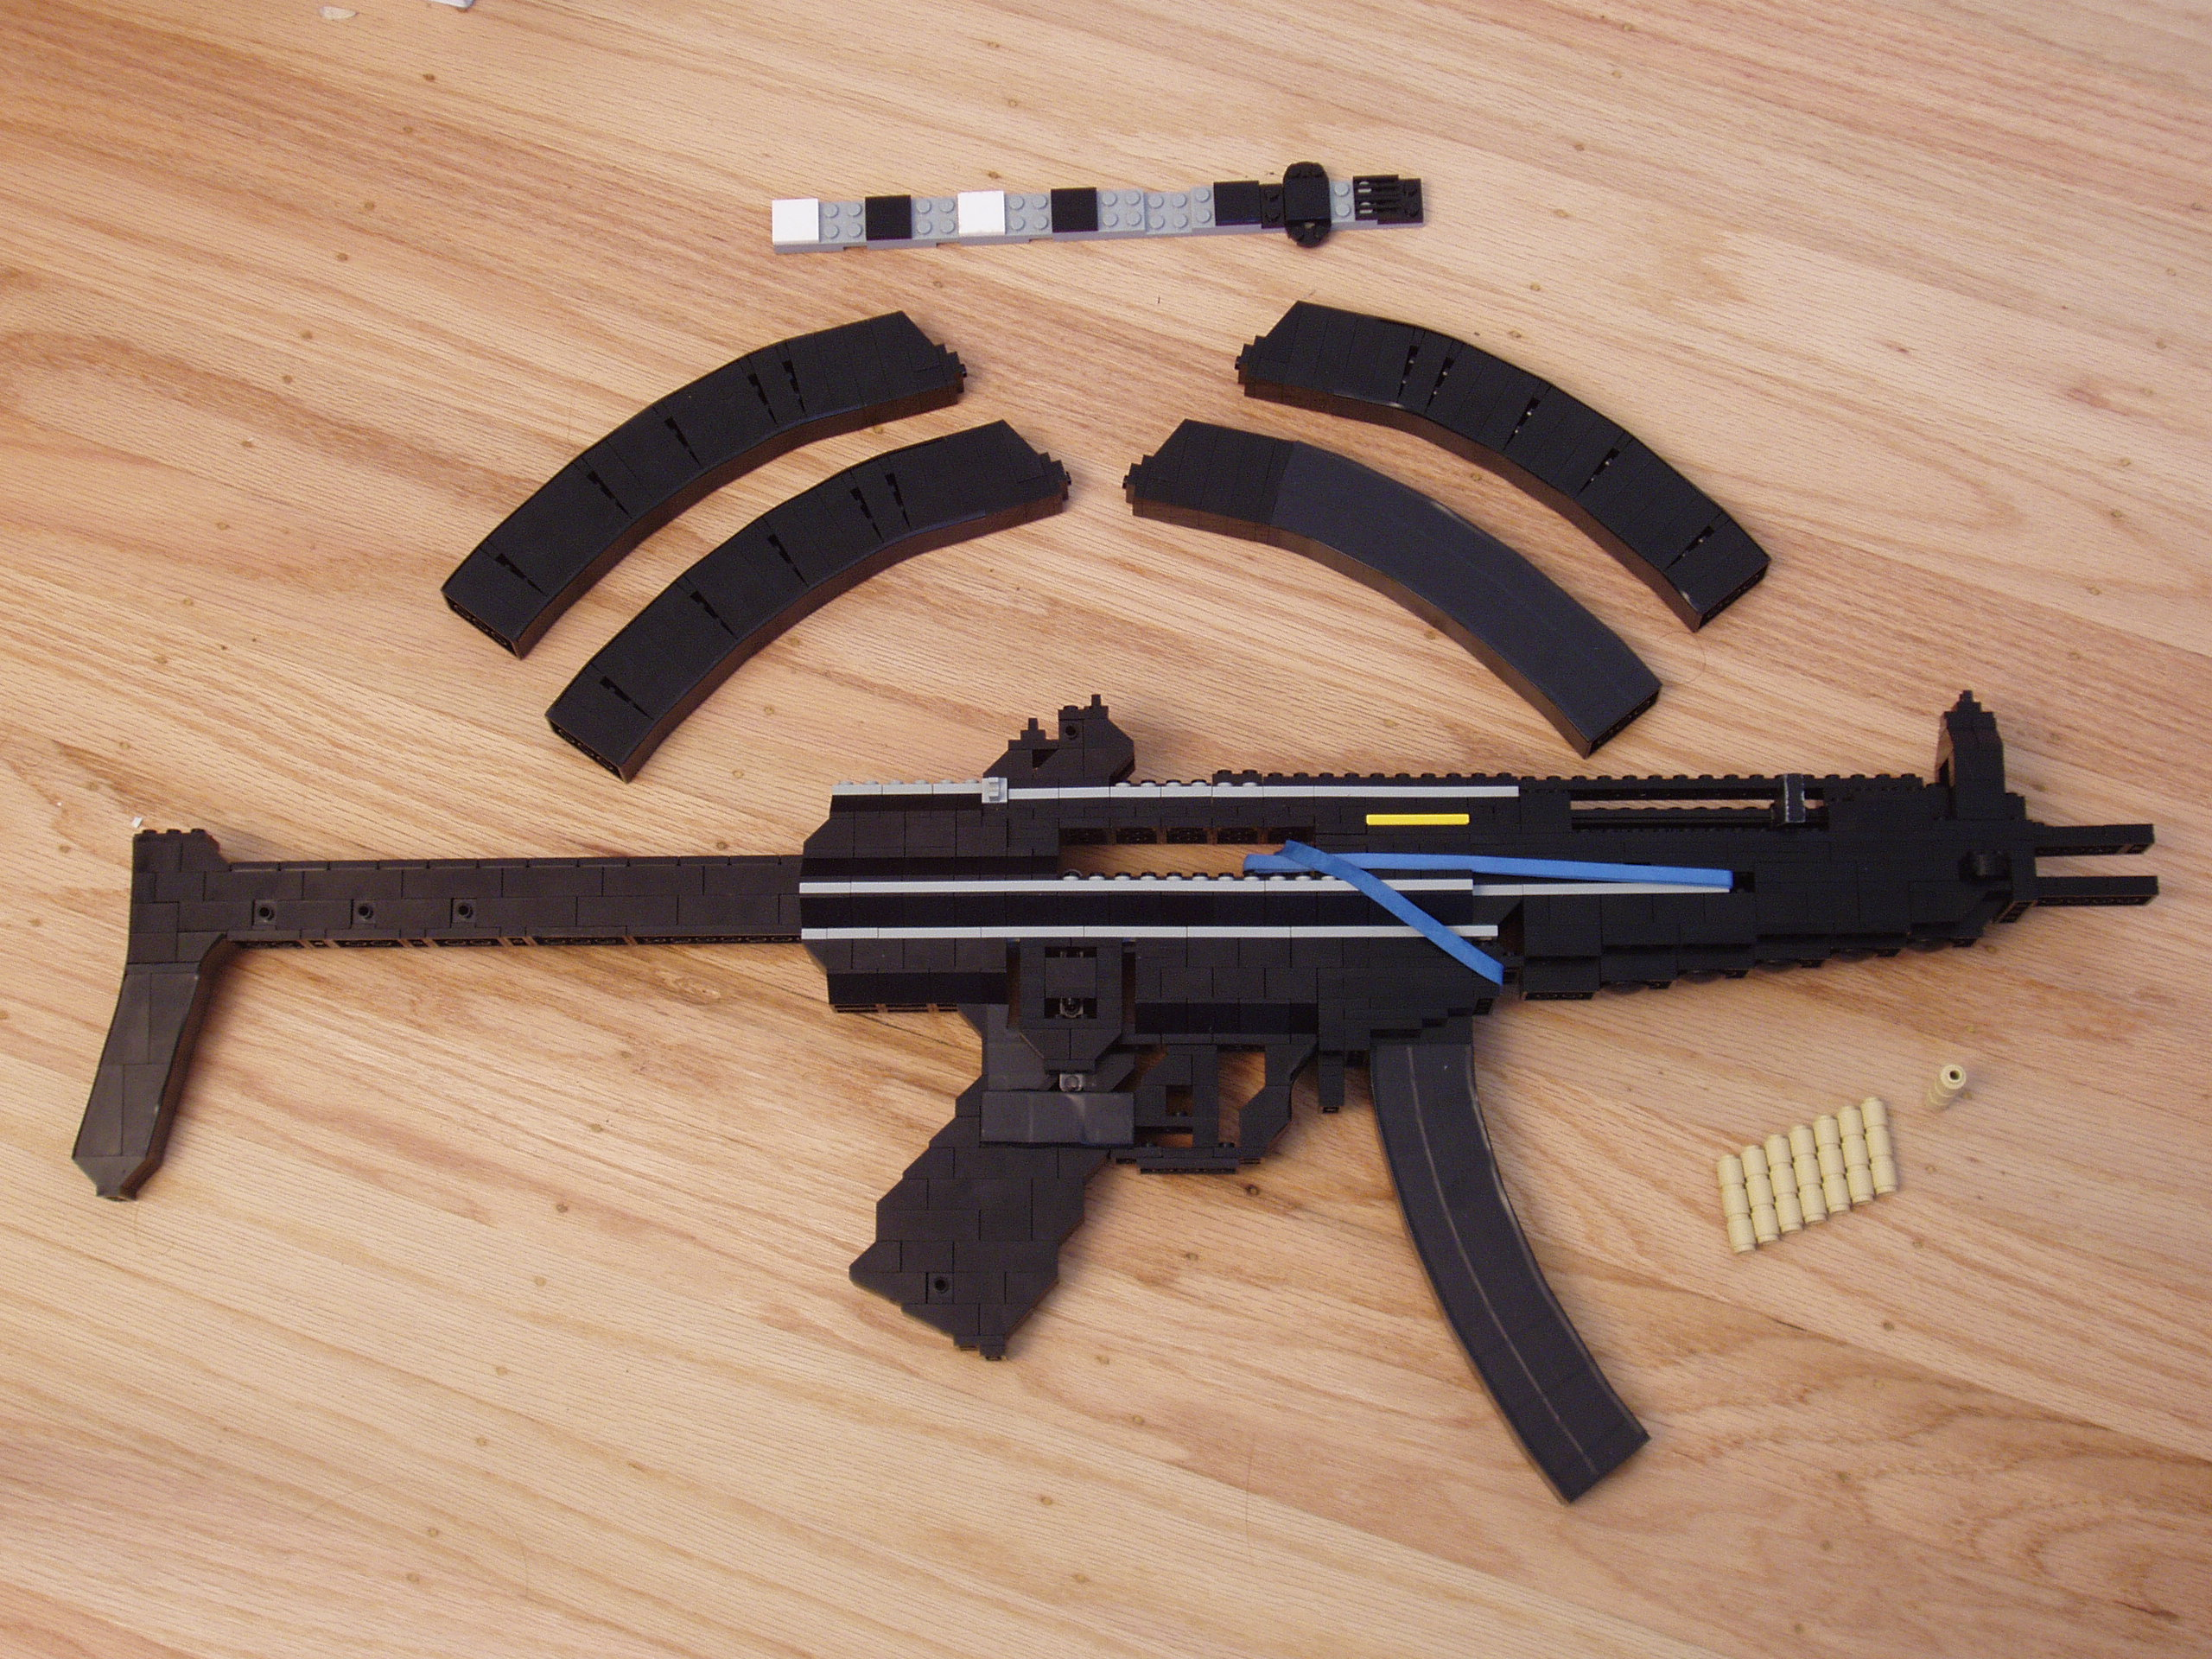 Heckler and Koch MP5 A5 - LEGO by xjcdentonx on DeviantArt